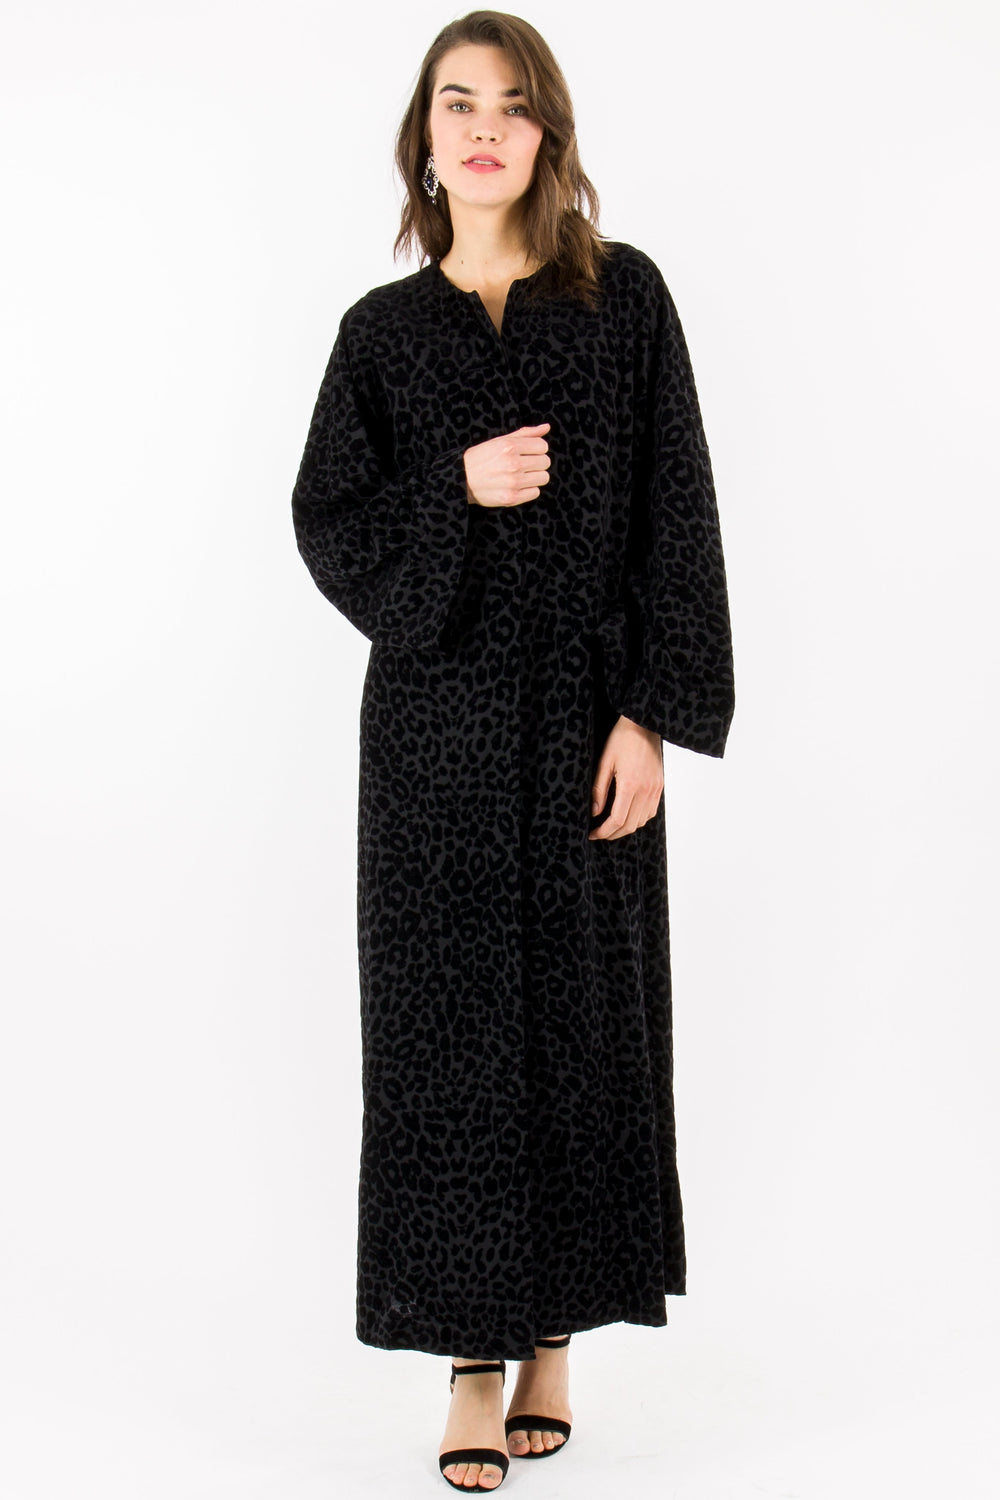 STORE WF Leopard Velvet Abaya Modest Long Sleeve Loose Black Abaya with Embossed Leopard Print